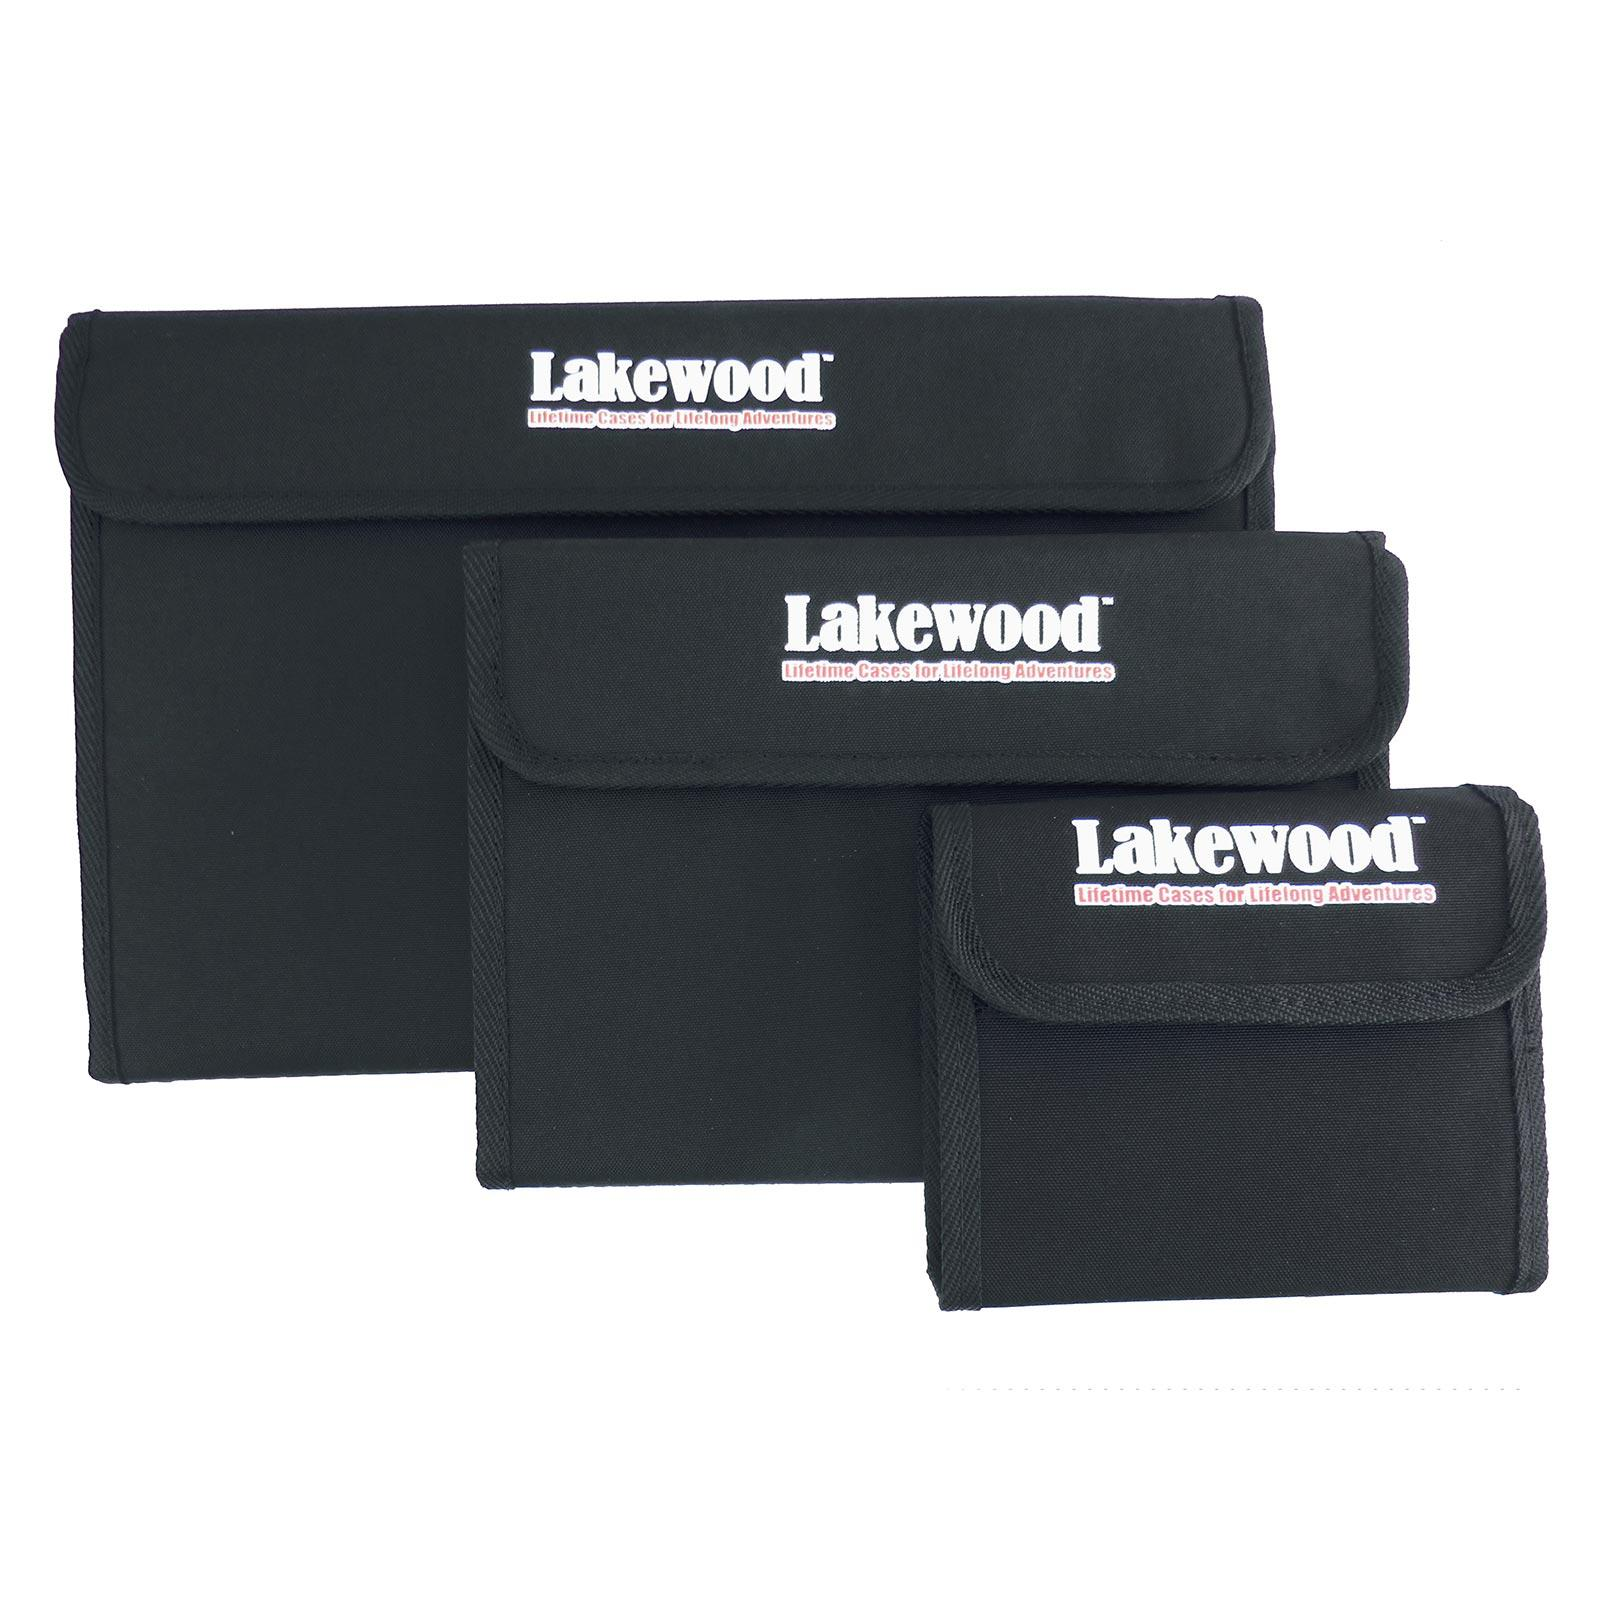 Lakewood Lure Wallet sizes